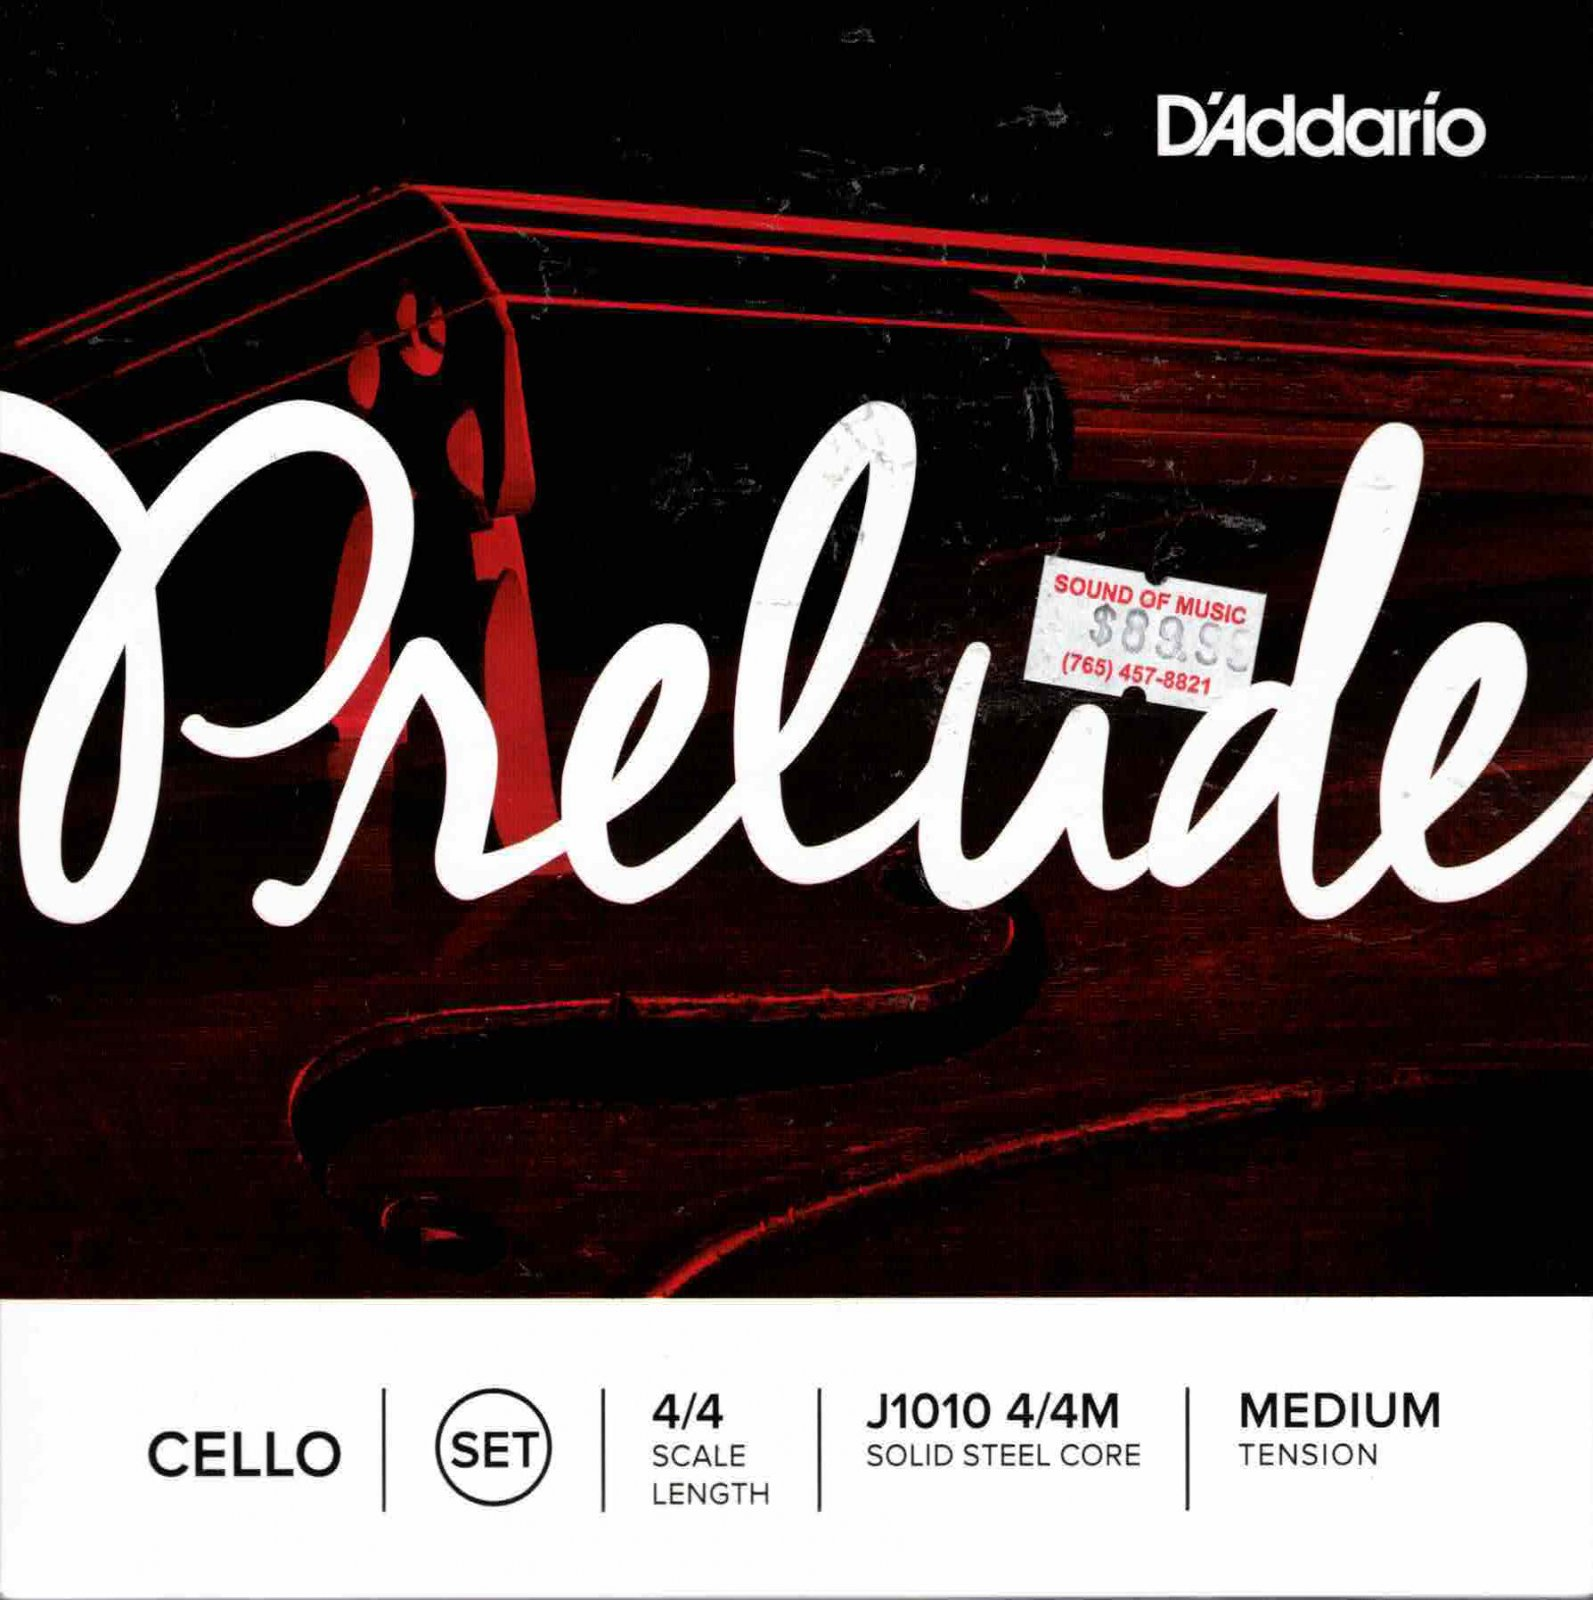 D'addario Prelude Cello 4/4 Medium Tension Solid Steel Core